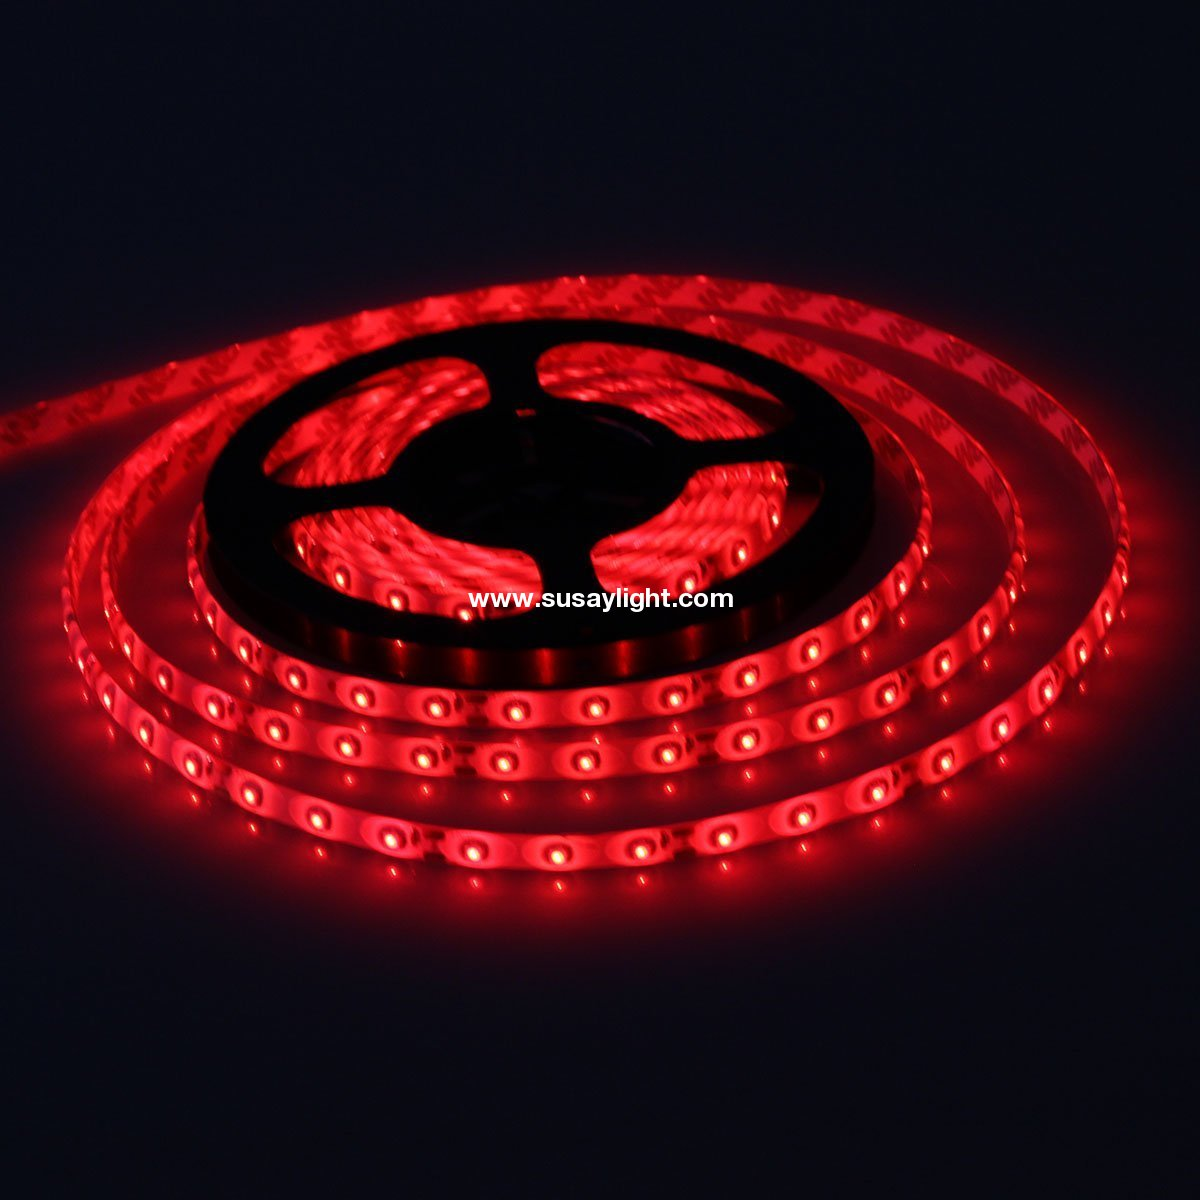 Waterproof Red Led 3528 Smd 300led 5m Flexible Light Strip 1